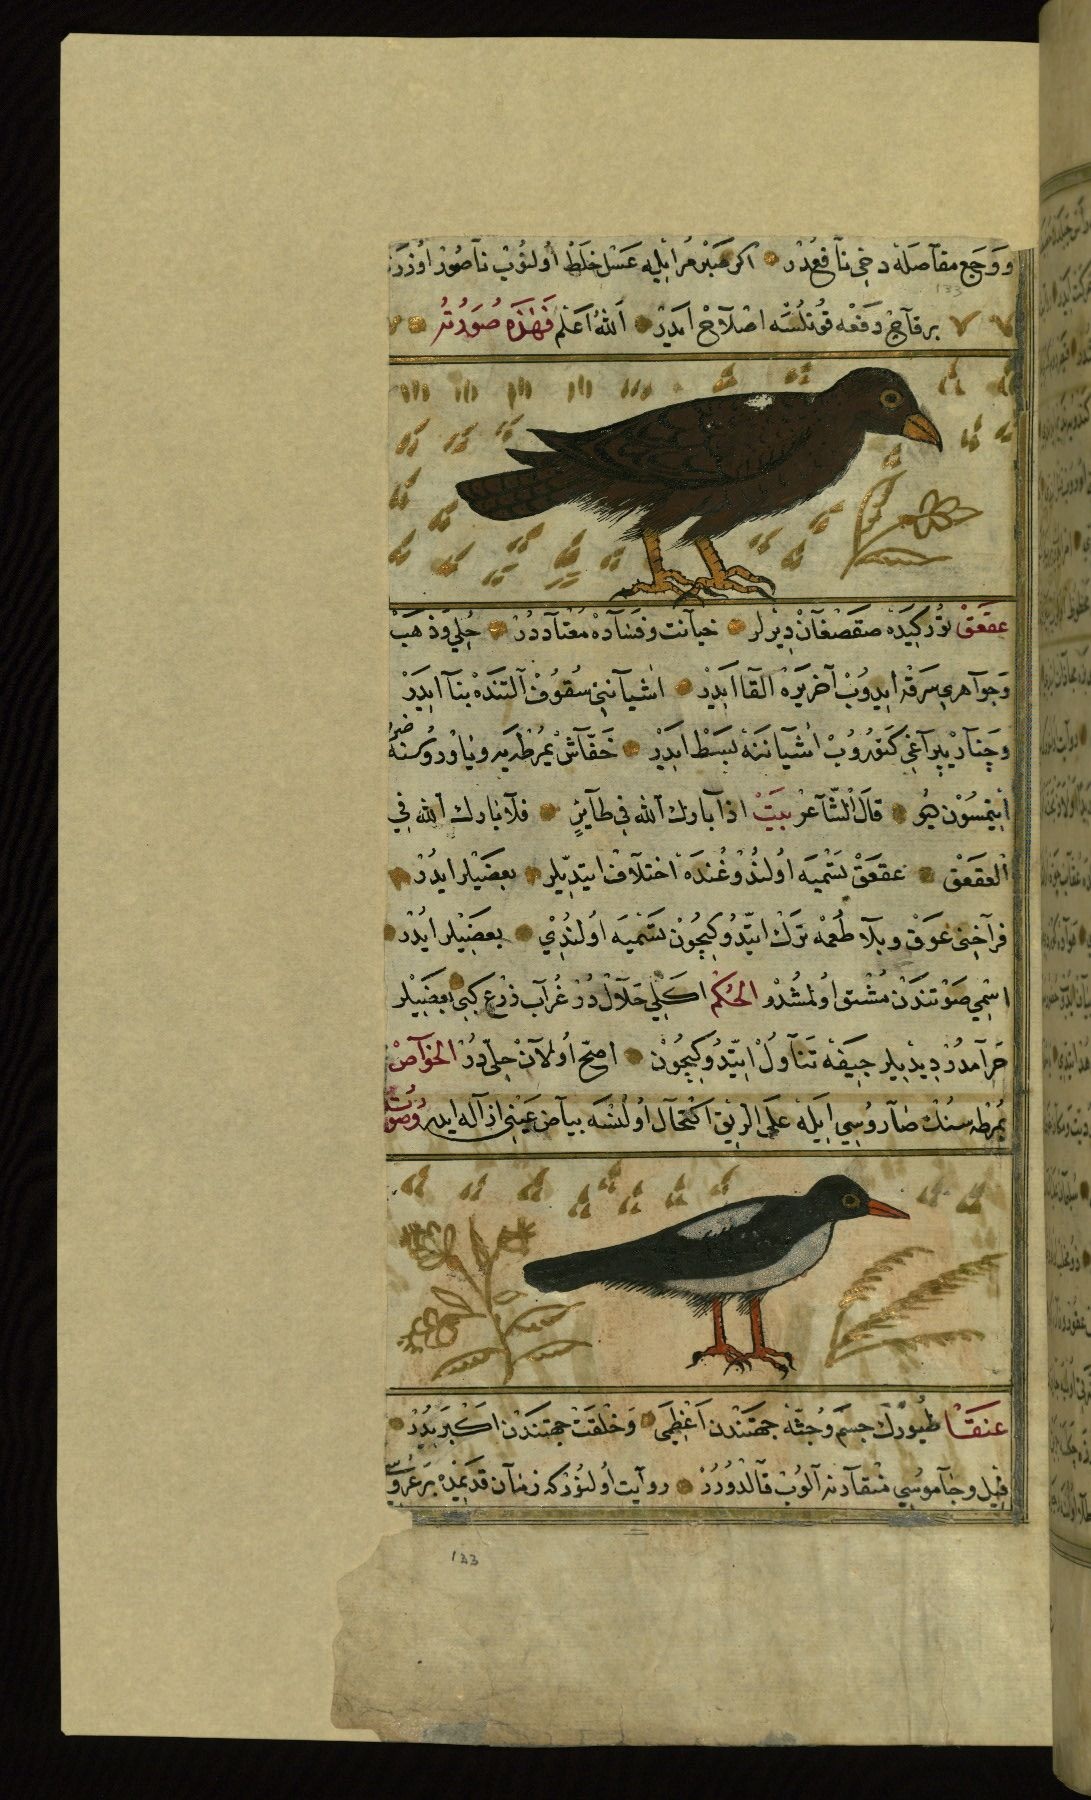 An eagle and a magpie Wonders of Creation by Qazwīnī 1293 was translated to Turkish in 1717  completed by Rūzmah-ʾi Nāthānī - W659